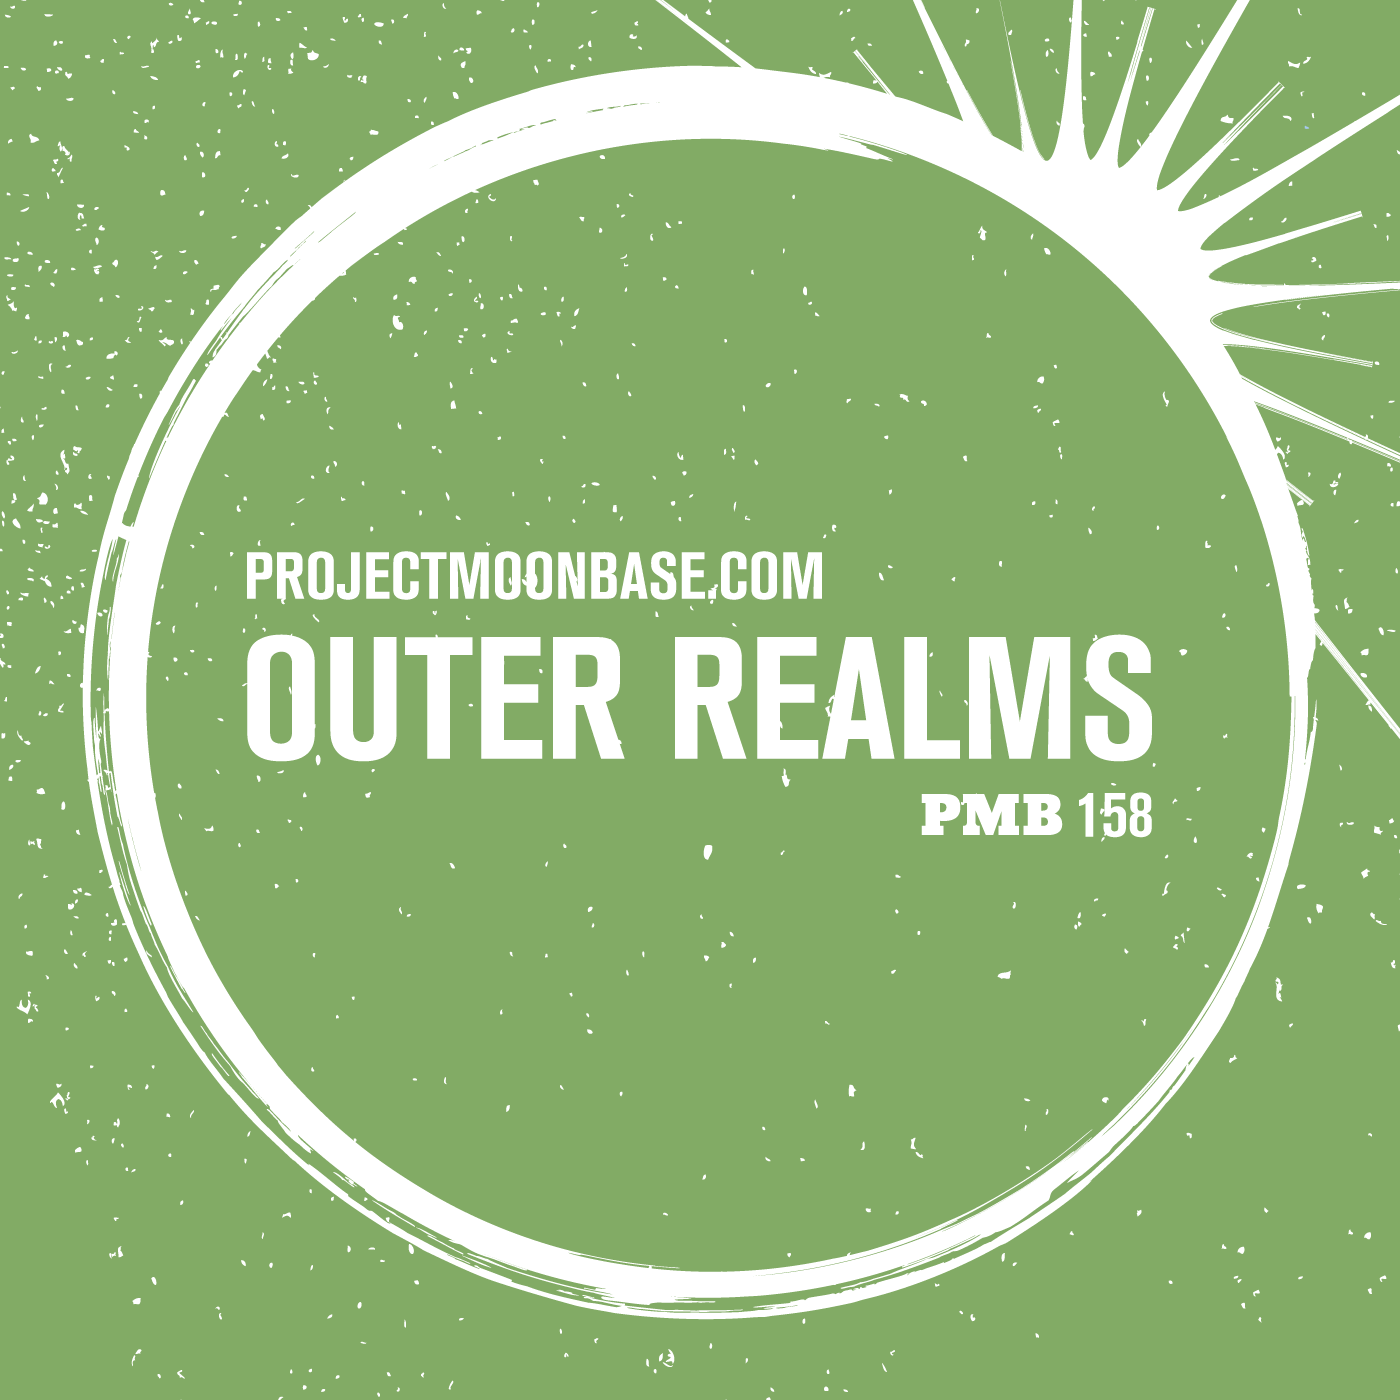 PMB158 Outer Realms